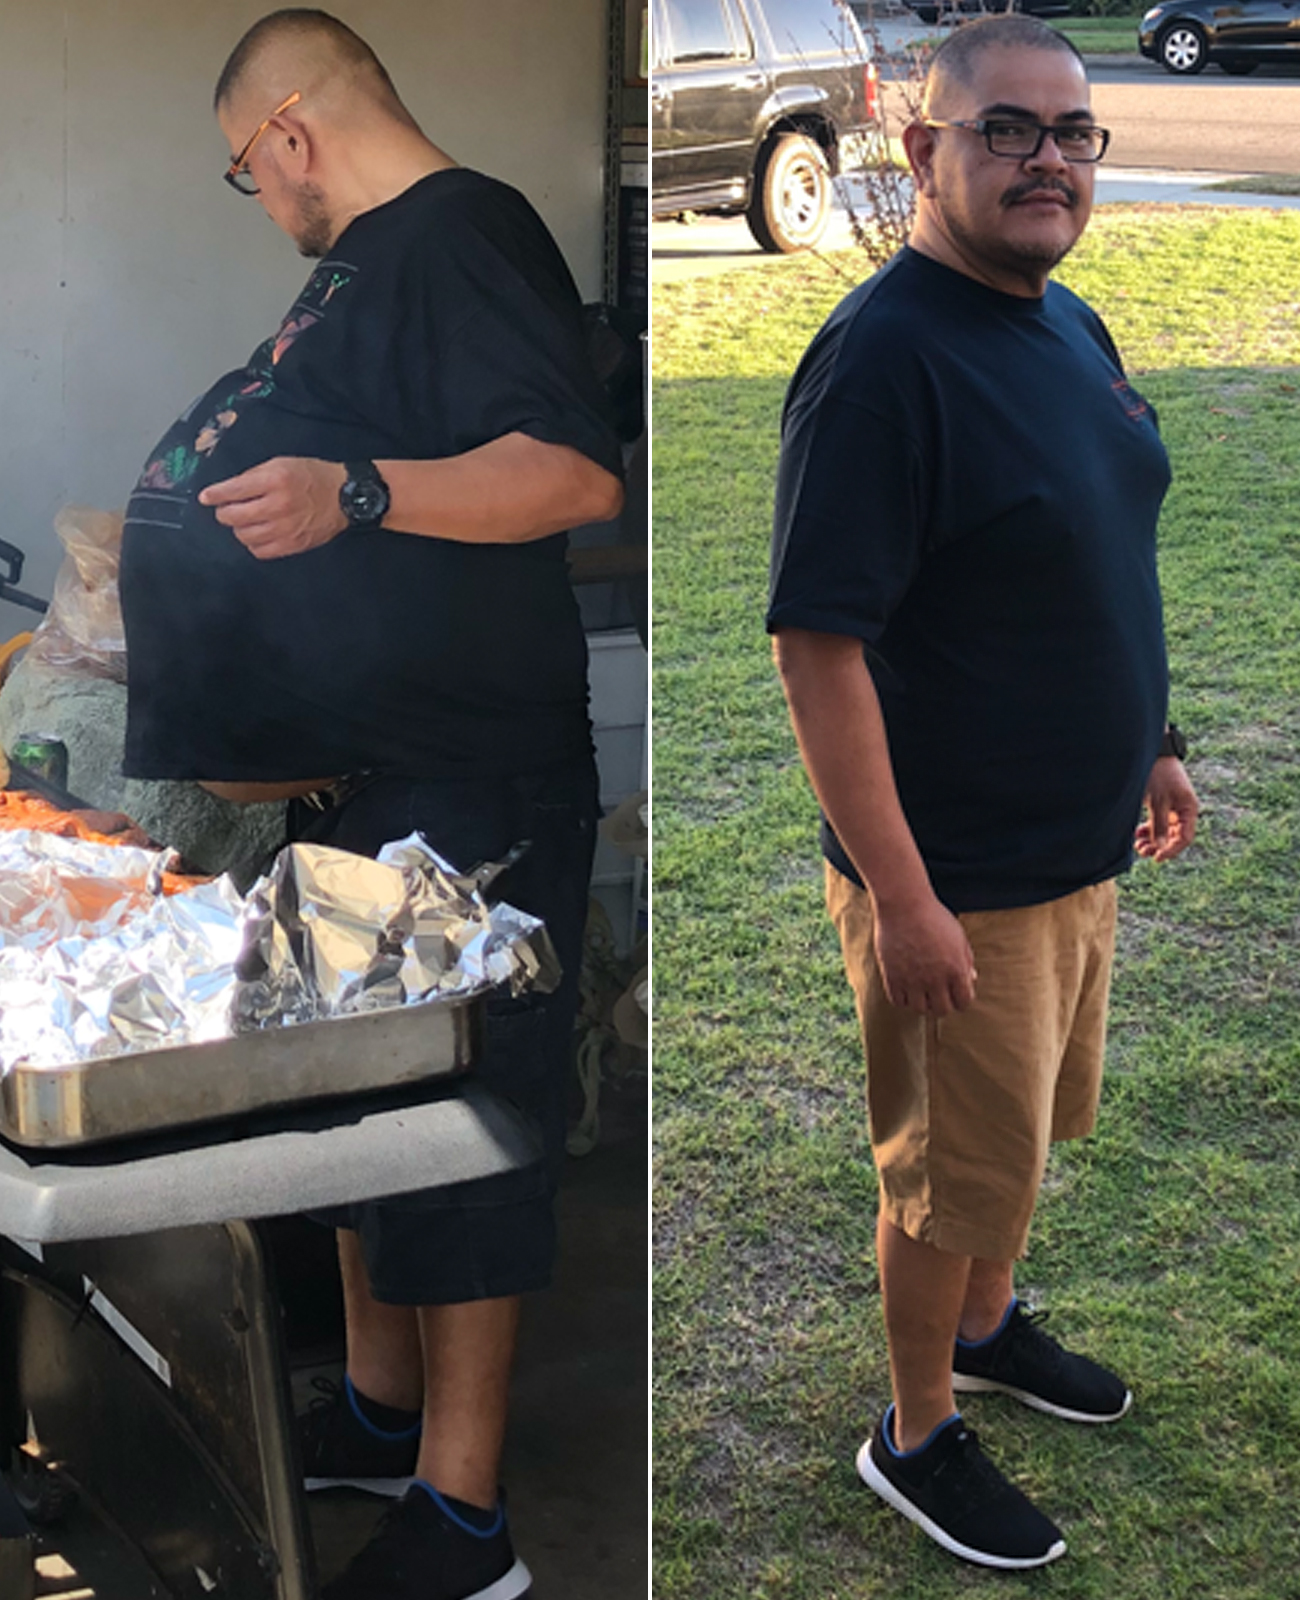 Man's 'Beer Belly' Turns Out to Be a 77-Lb. Tumor: 'I Thought I Was Just Fat'